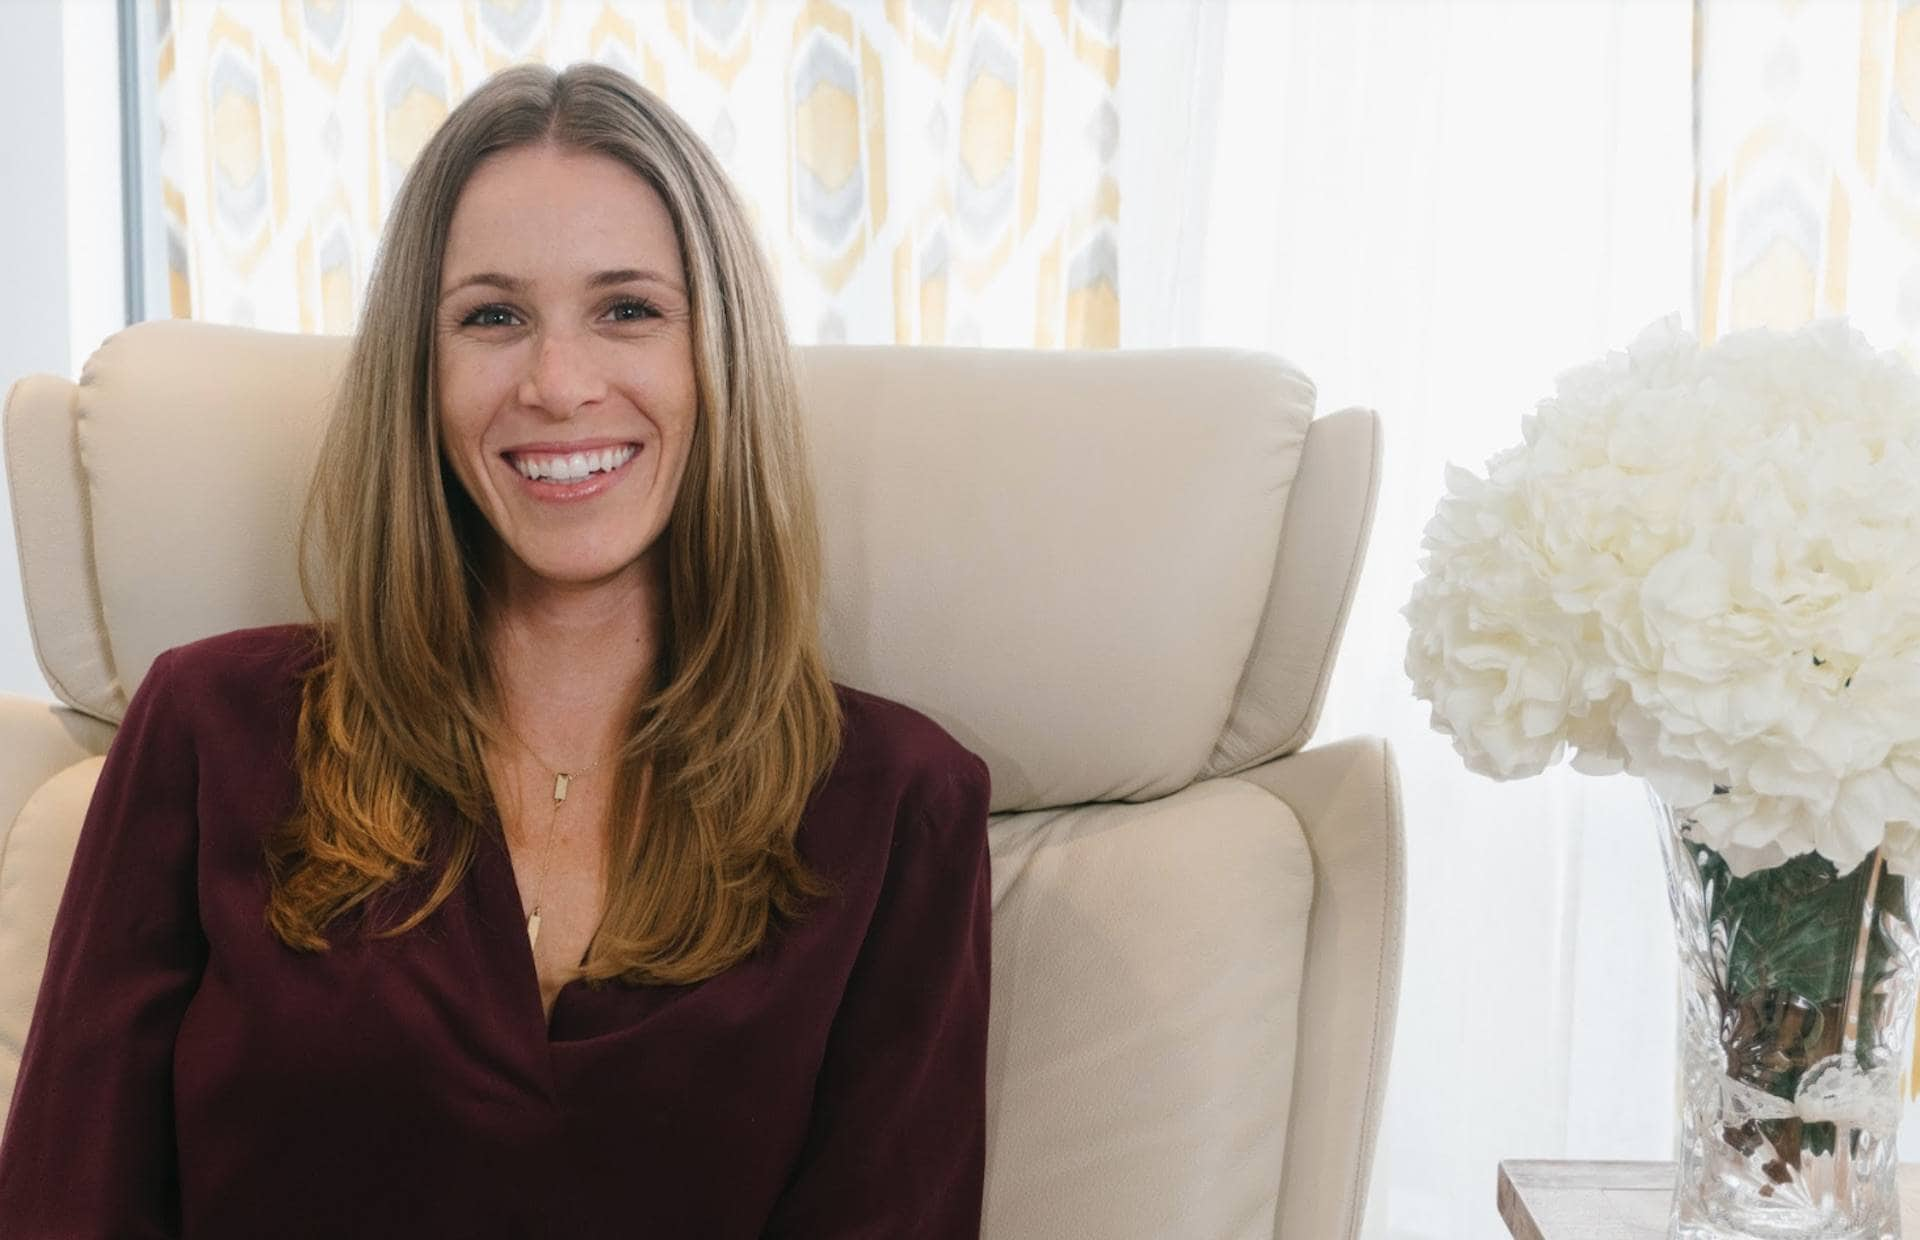 Meet Brooke Sprowl of My LA Therapy